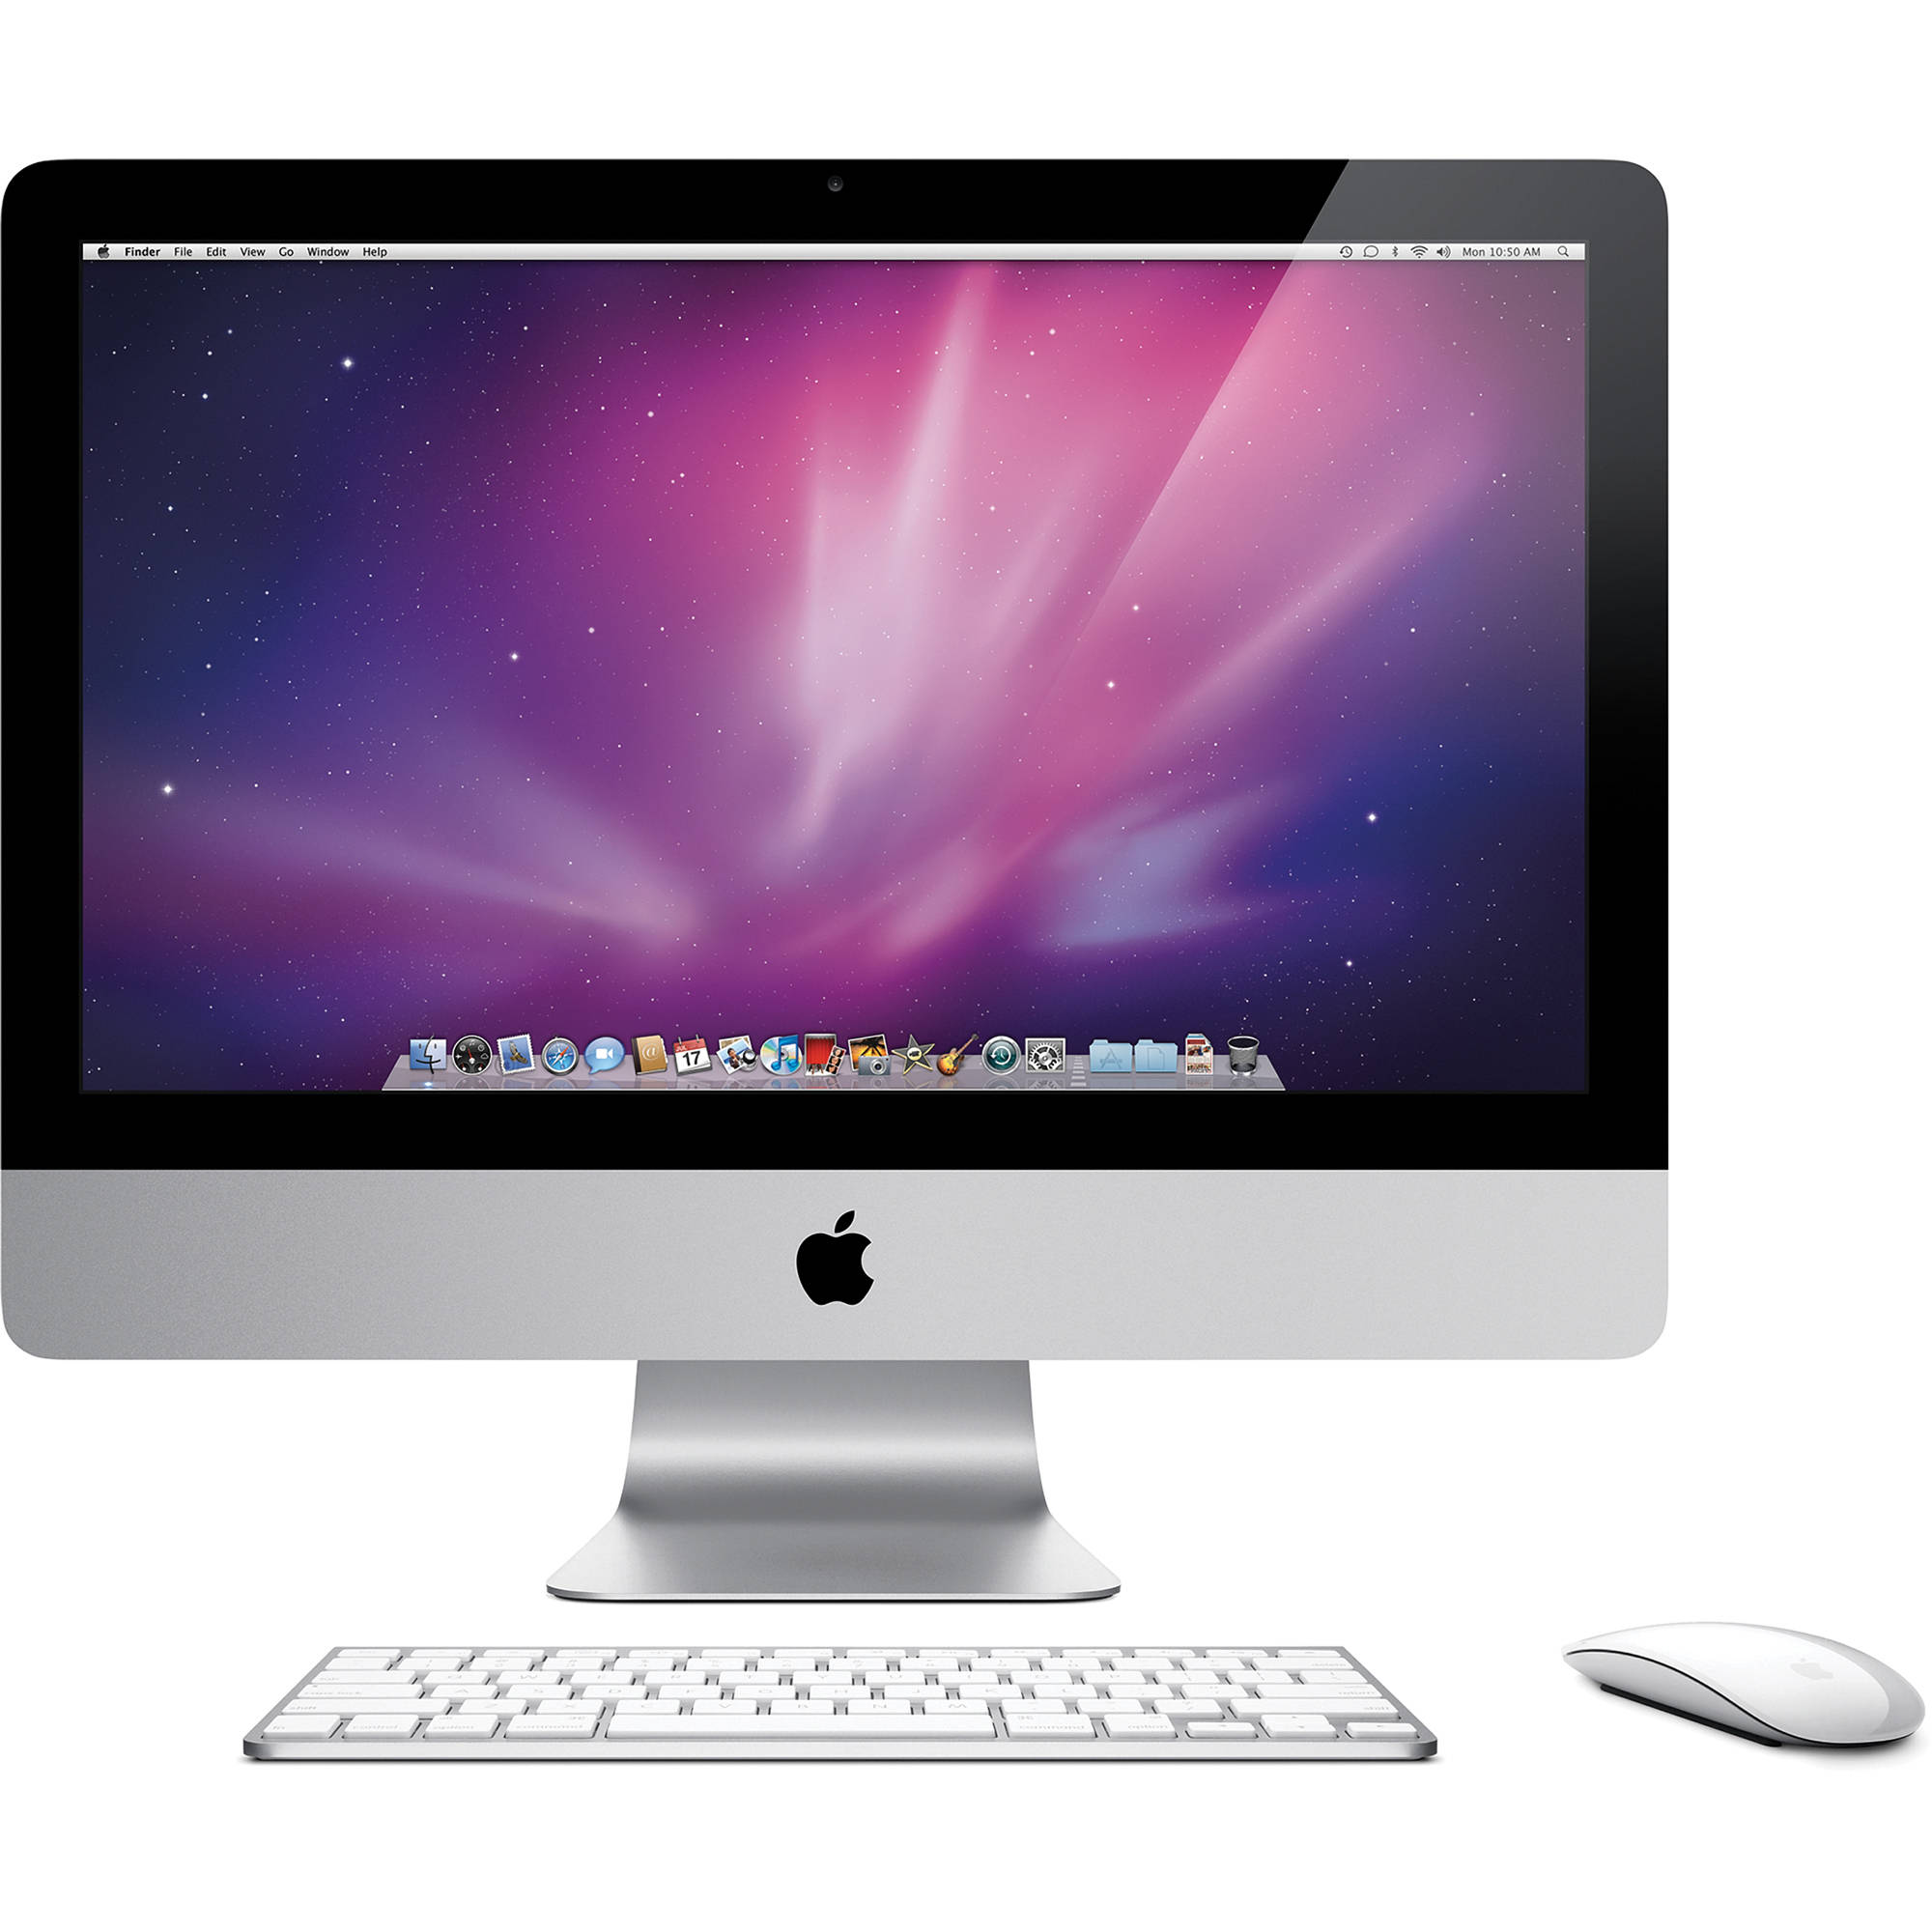 Apple_MC508LL_A_21_5_iMac_Desktop_Computer_723265.jpg